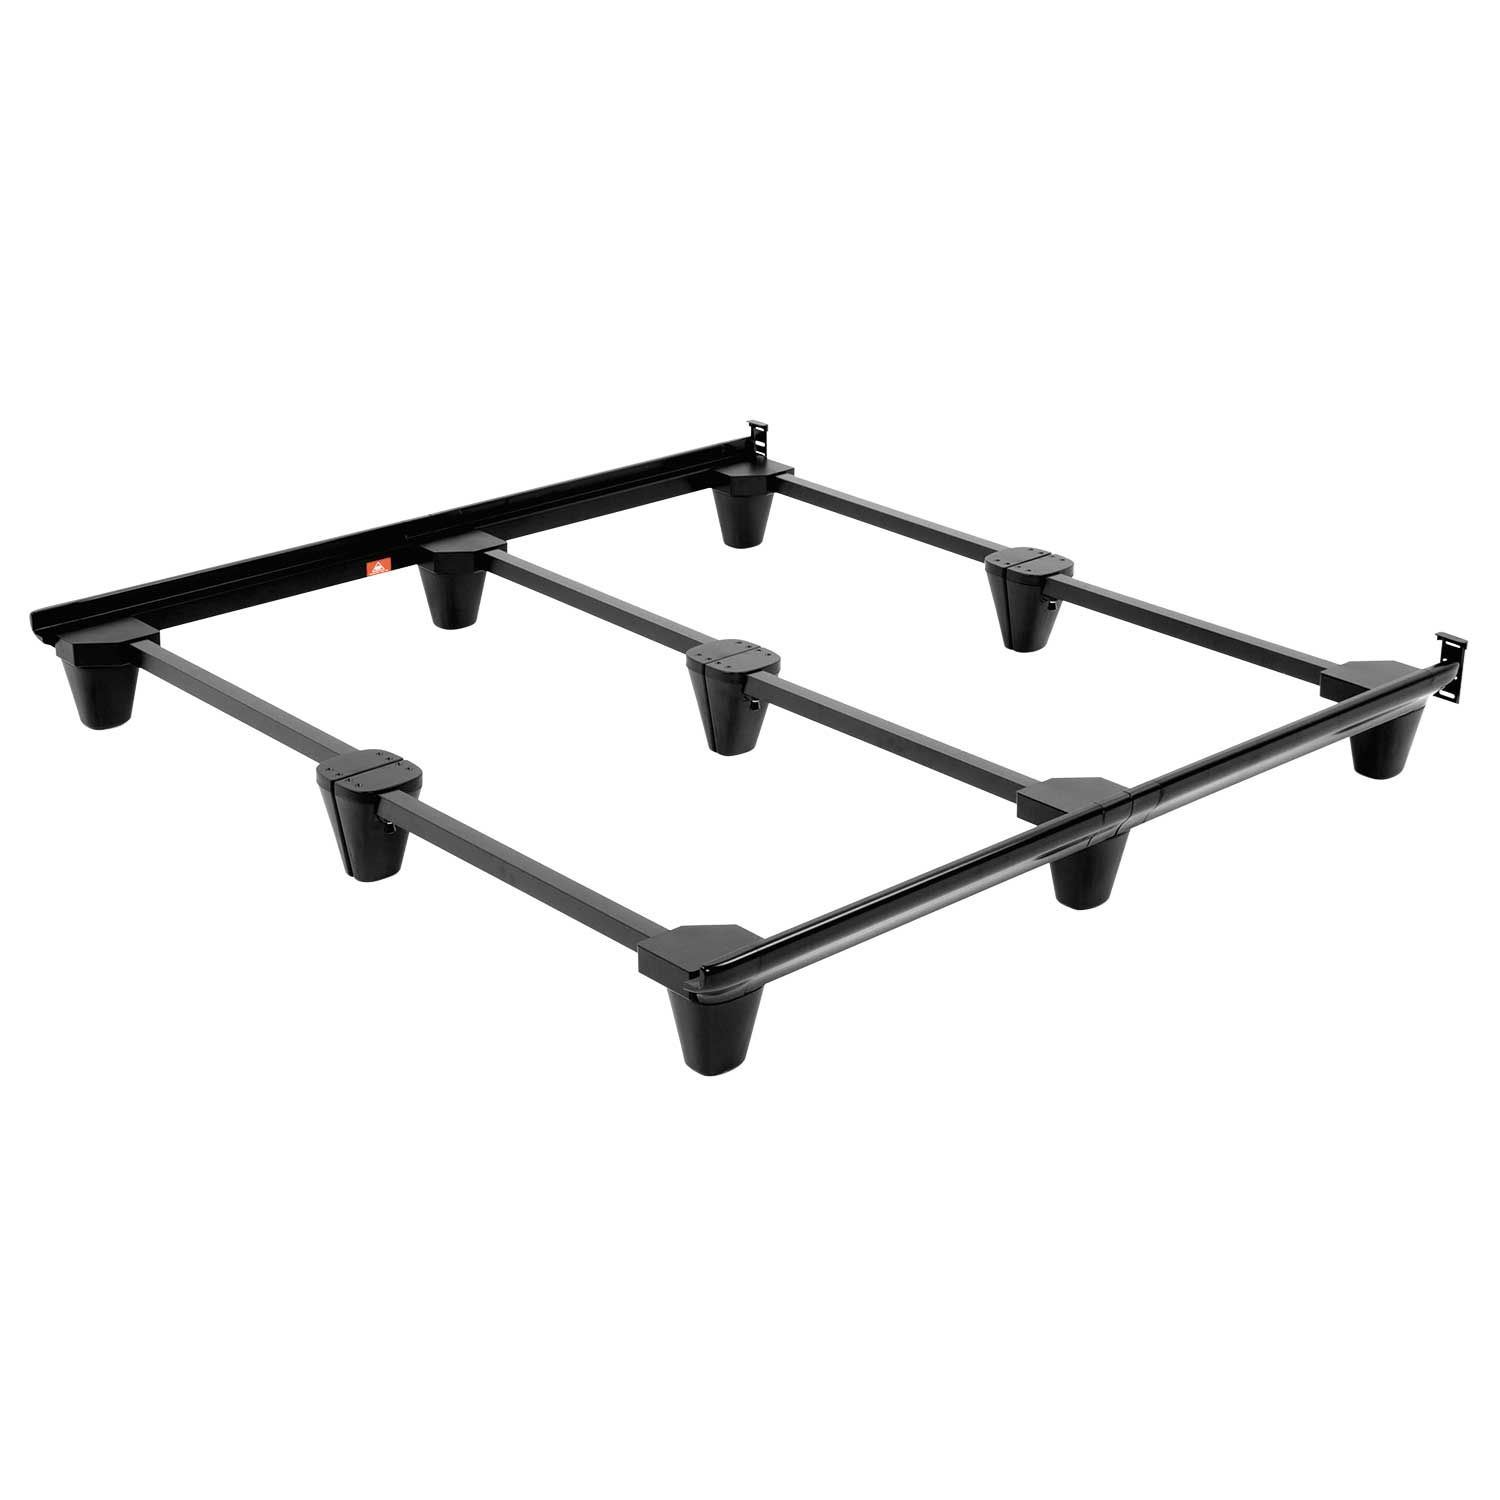 Presto Bed Frame For Full Queen King California King Sizes